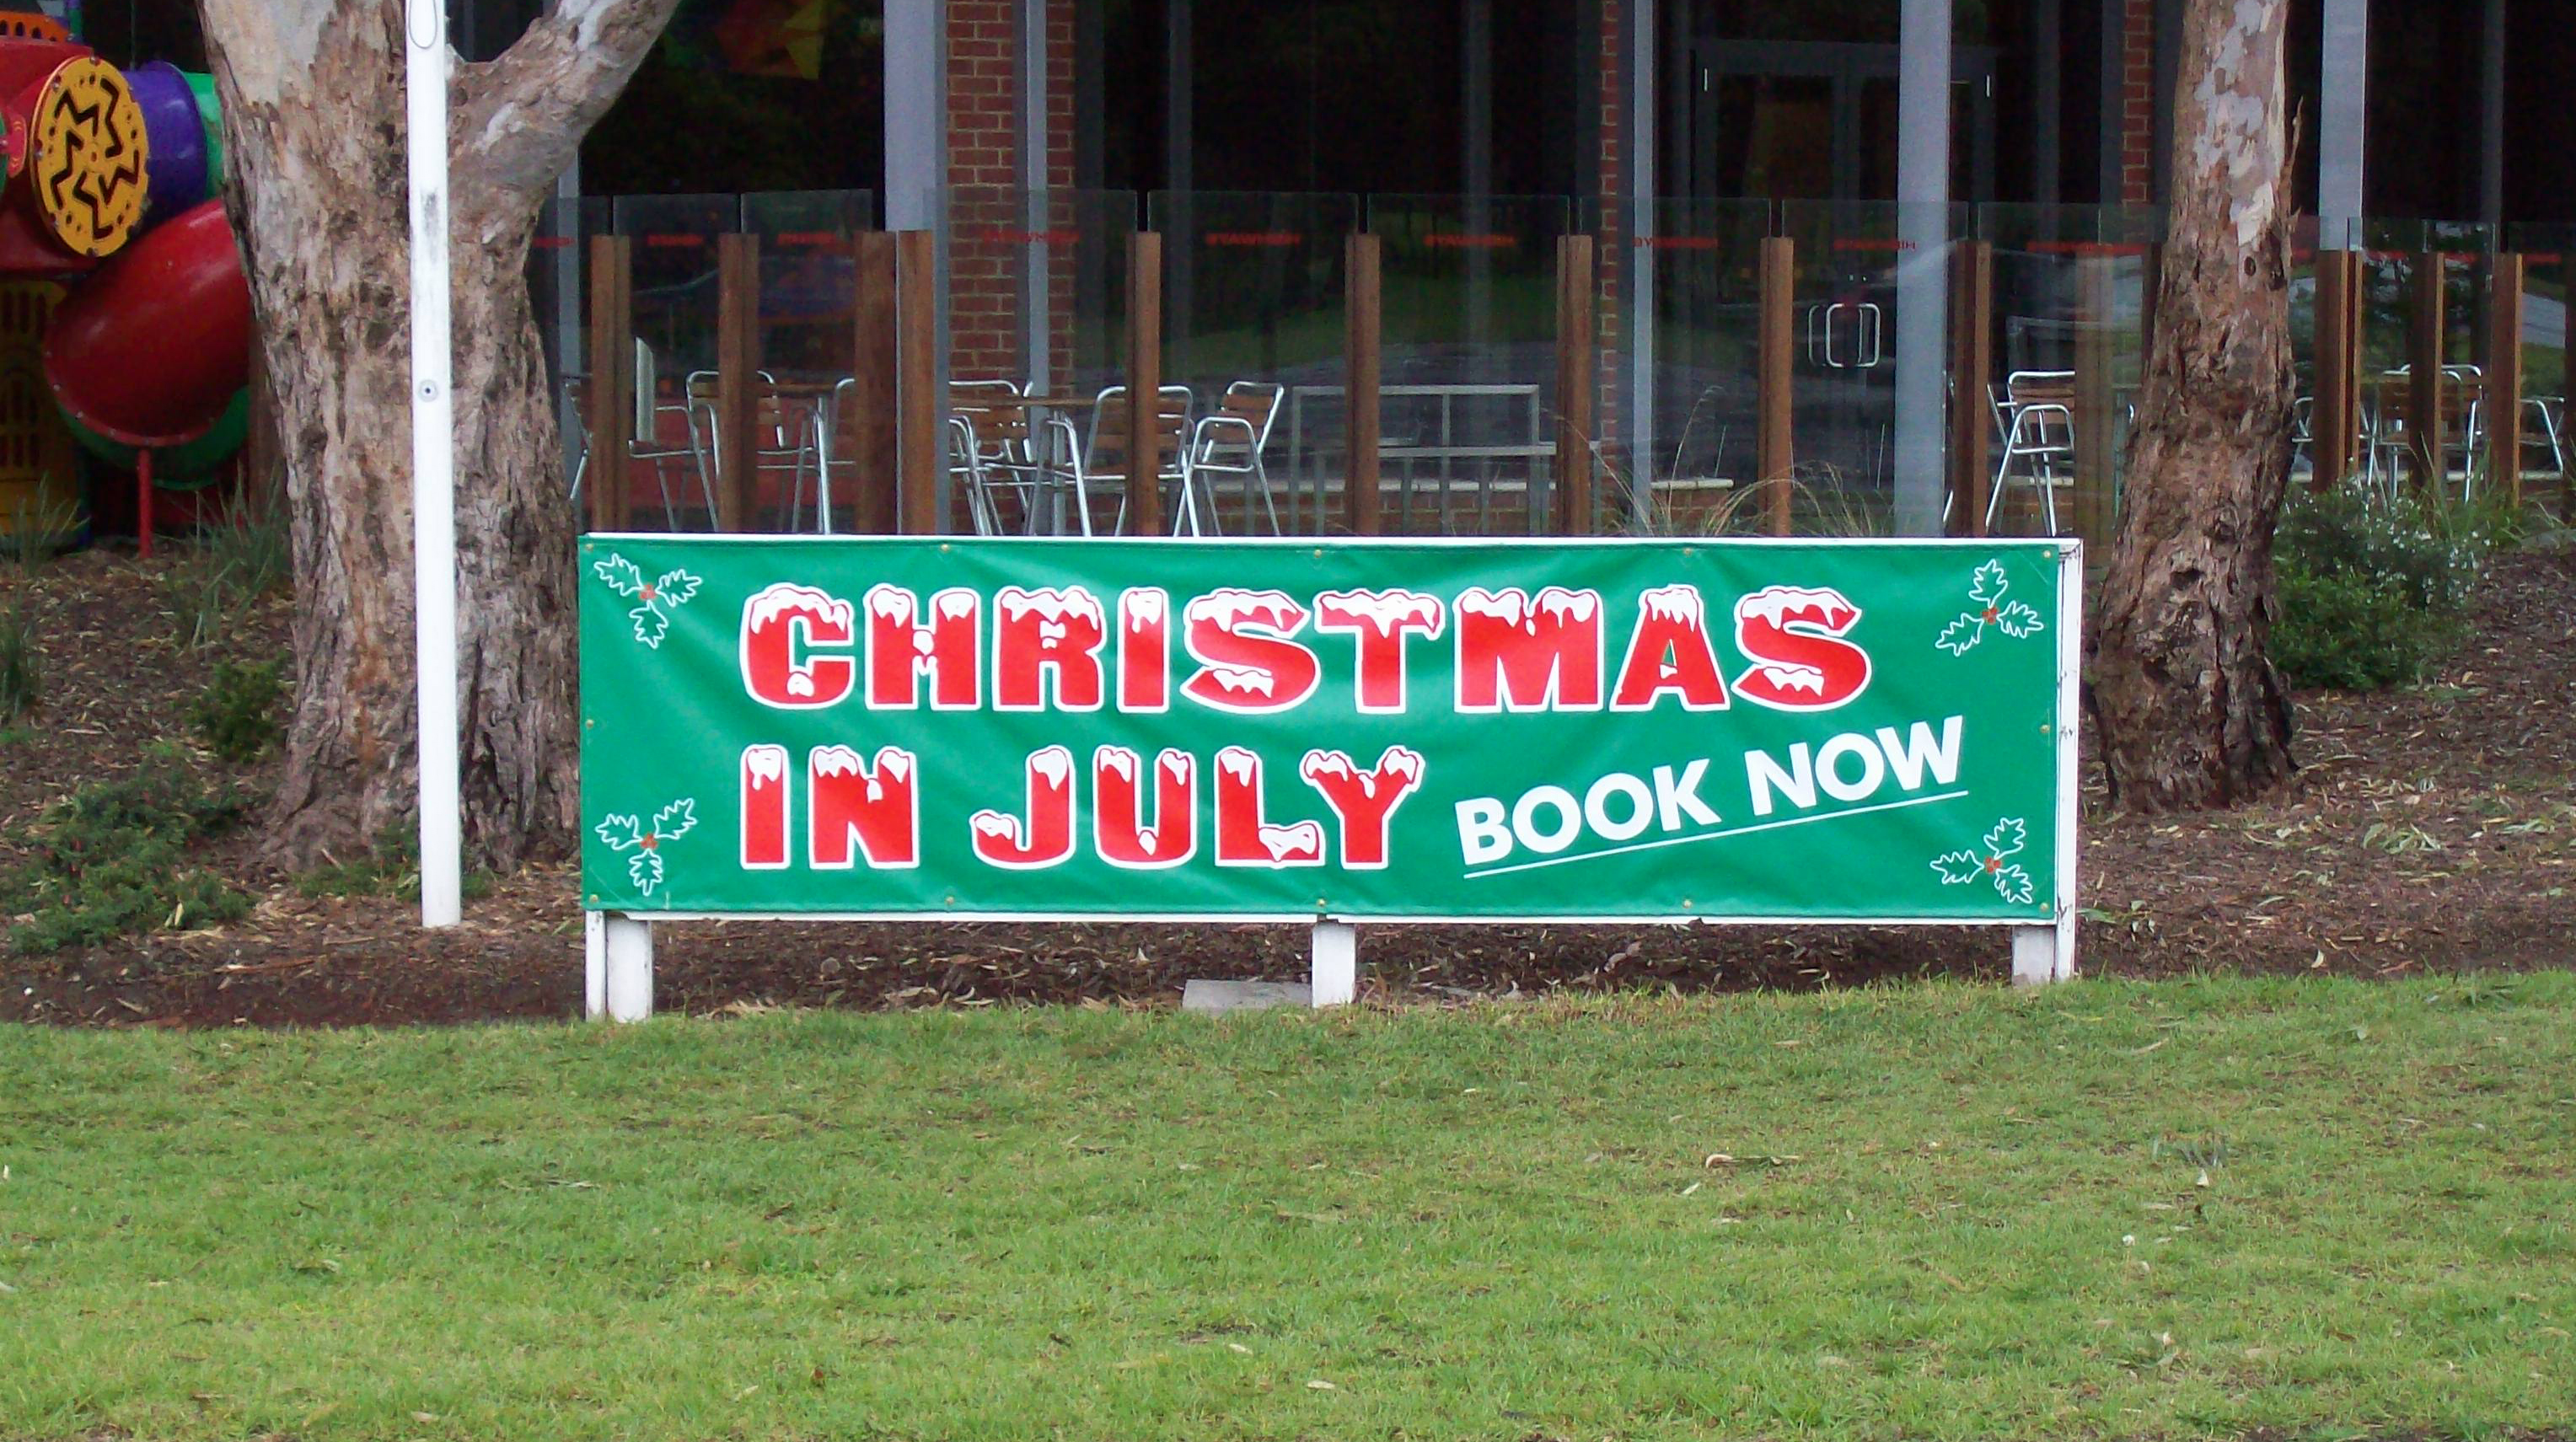 Christmas in July - Wikipedia